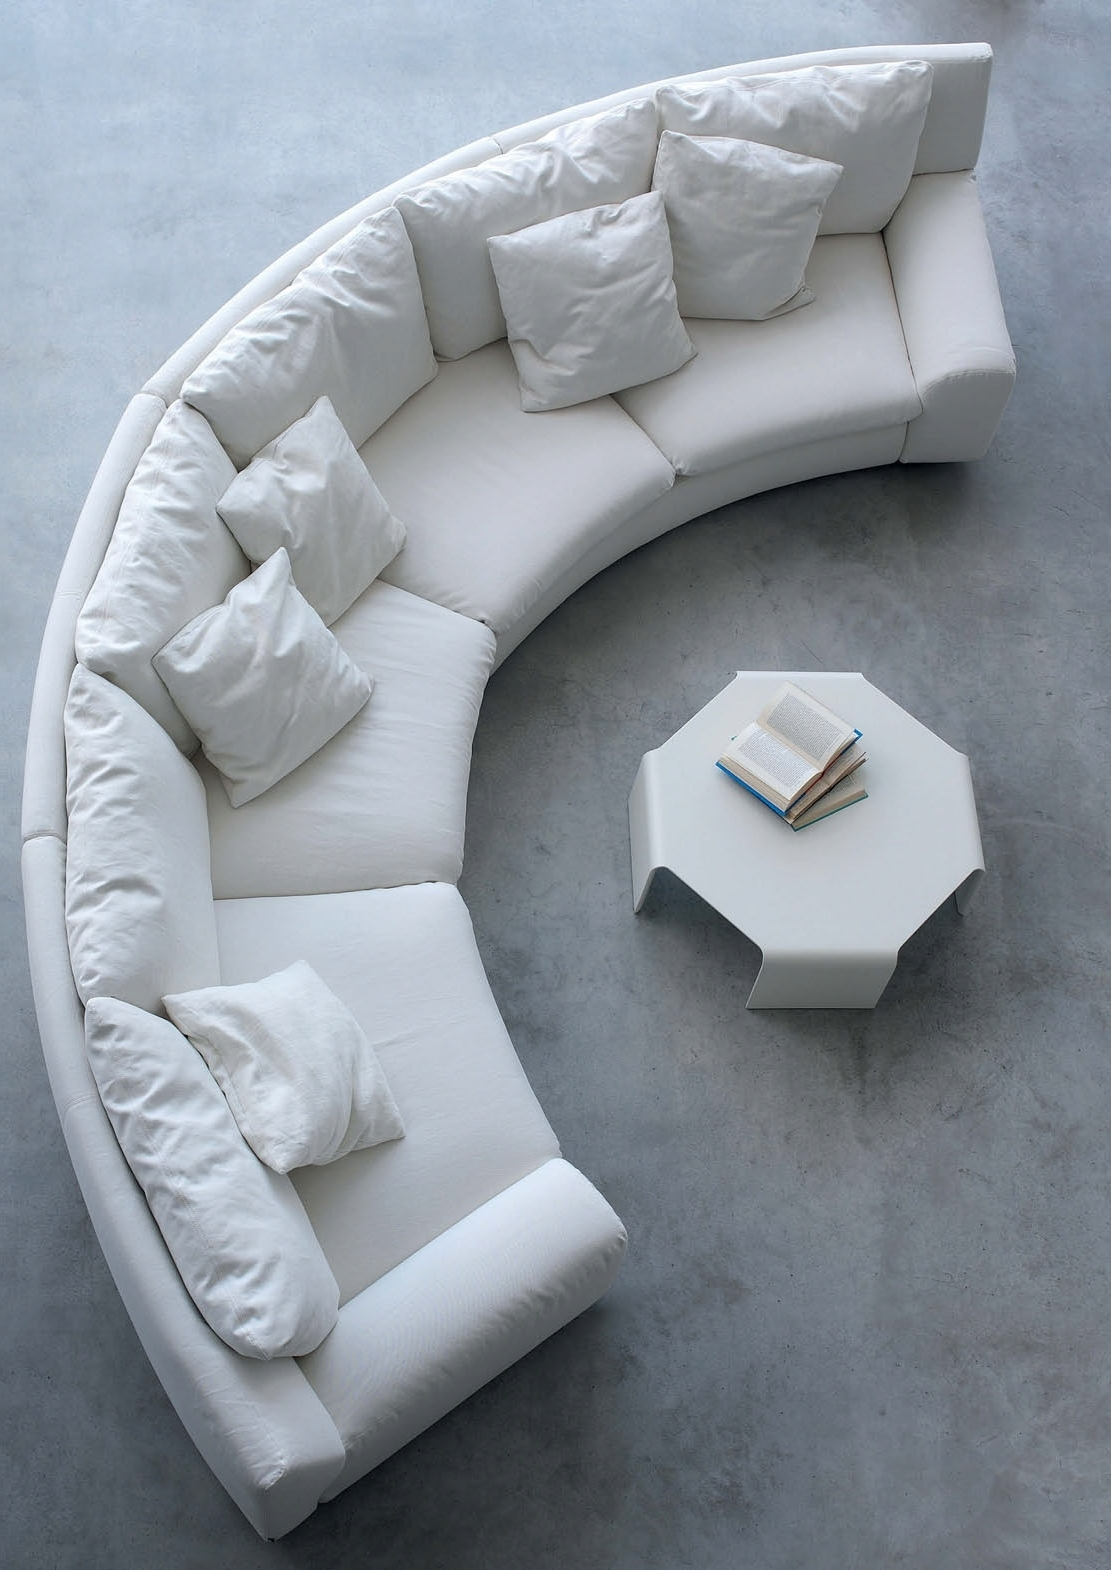 Recent The Semicircular Sofa In Fabric Ben Ben, Arflex – Luxury Furniture Mr Throughout Semicircular Sofas (View 9 of 15)